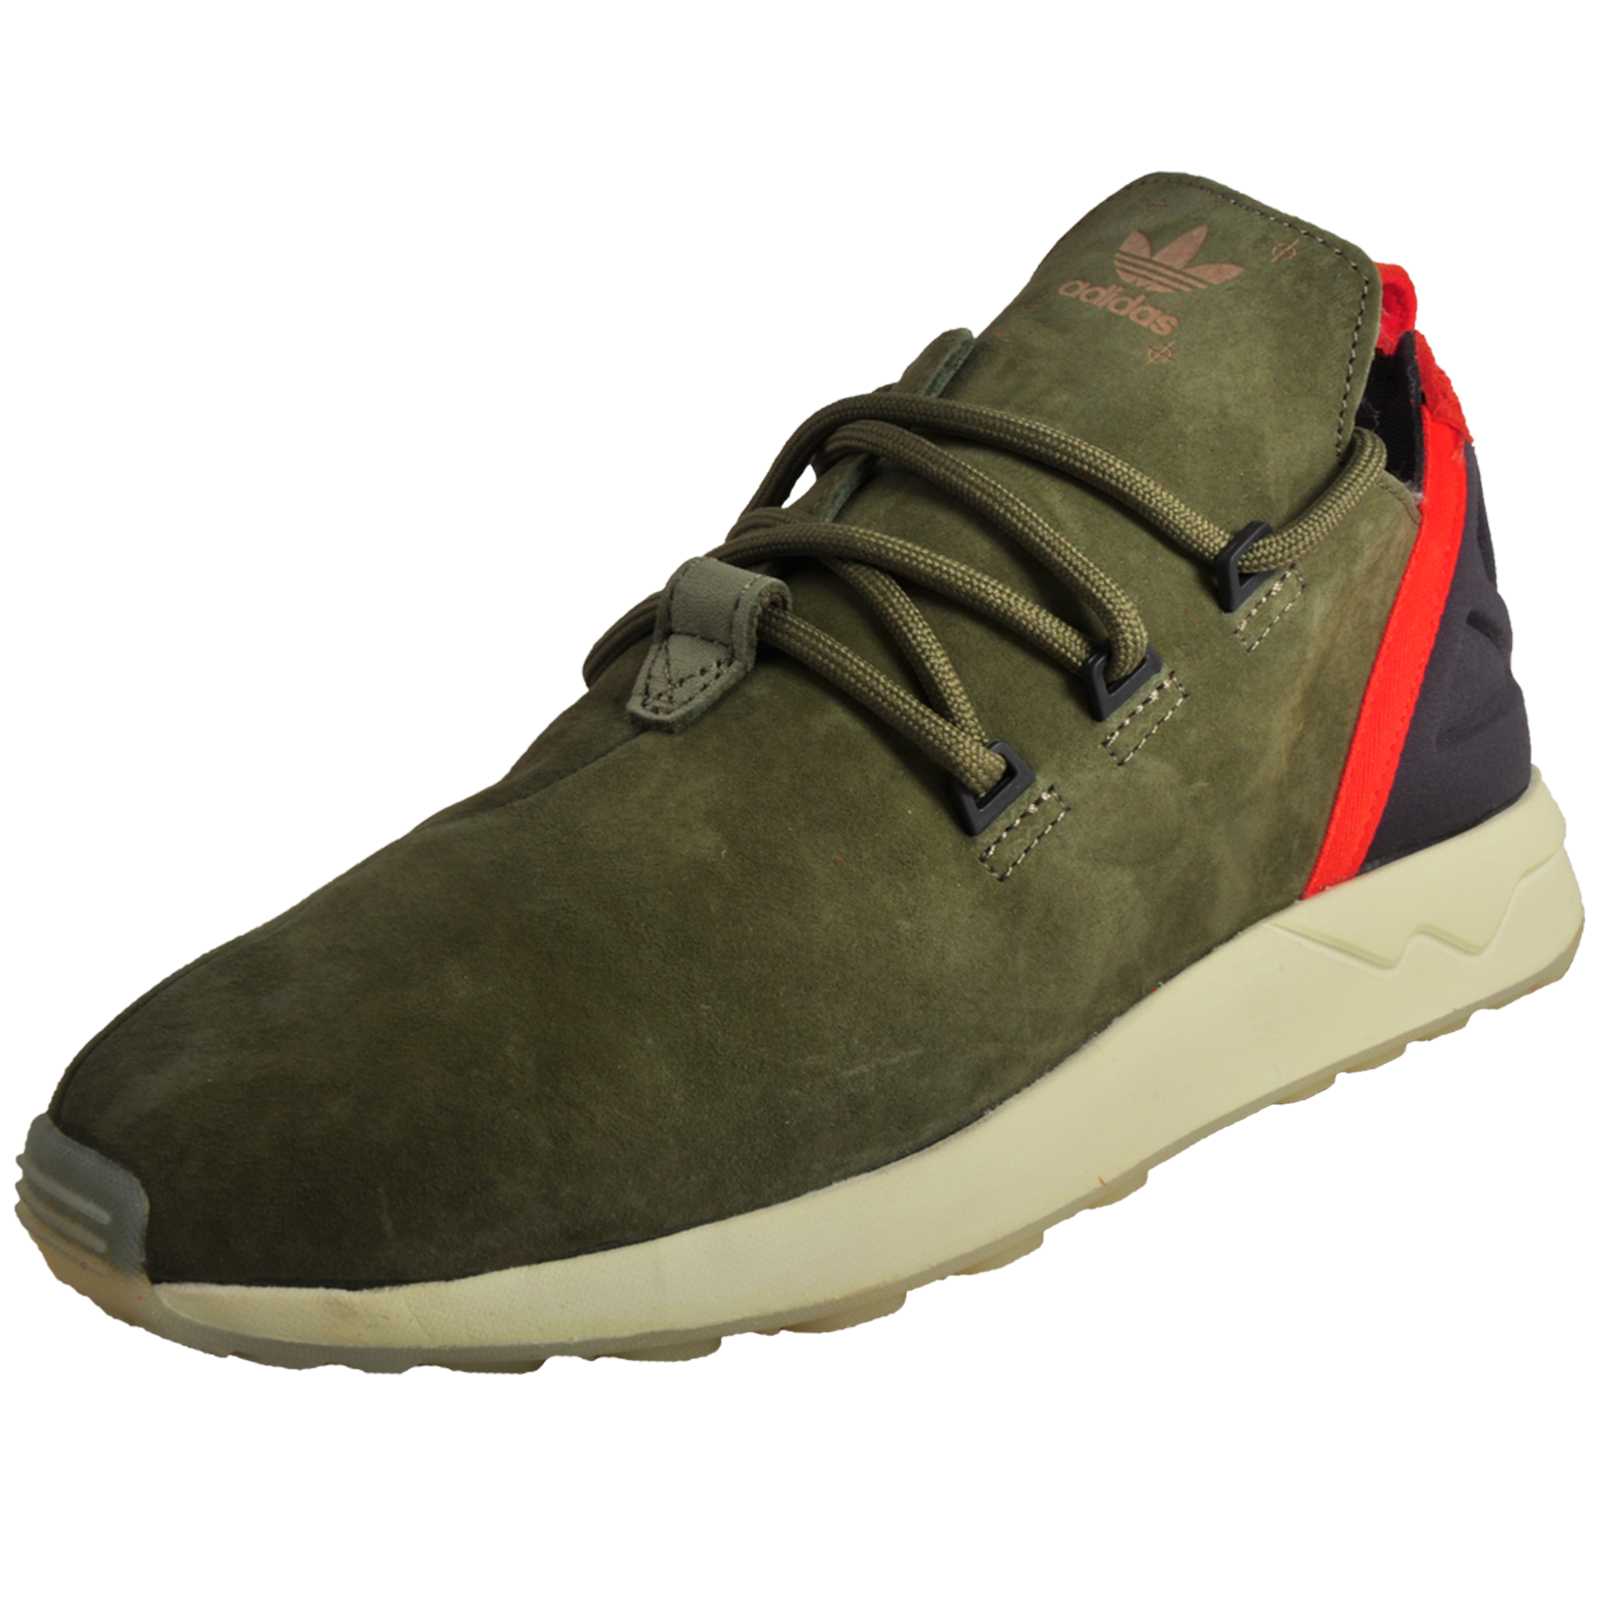 5068186f229d0 Details about Adidas Originals ZX Flux ADV X Limited Edition Mens Classic  Suede Trainers Green